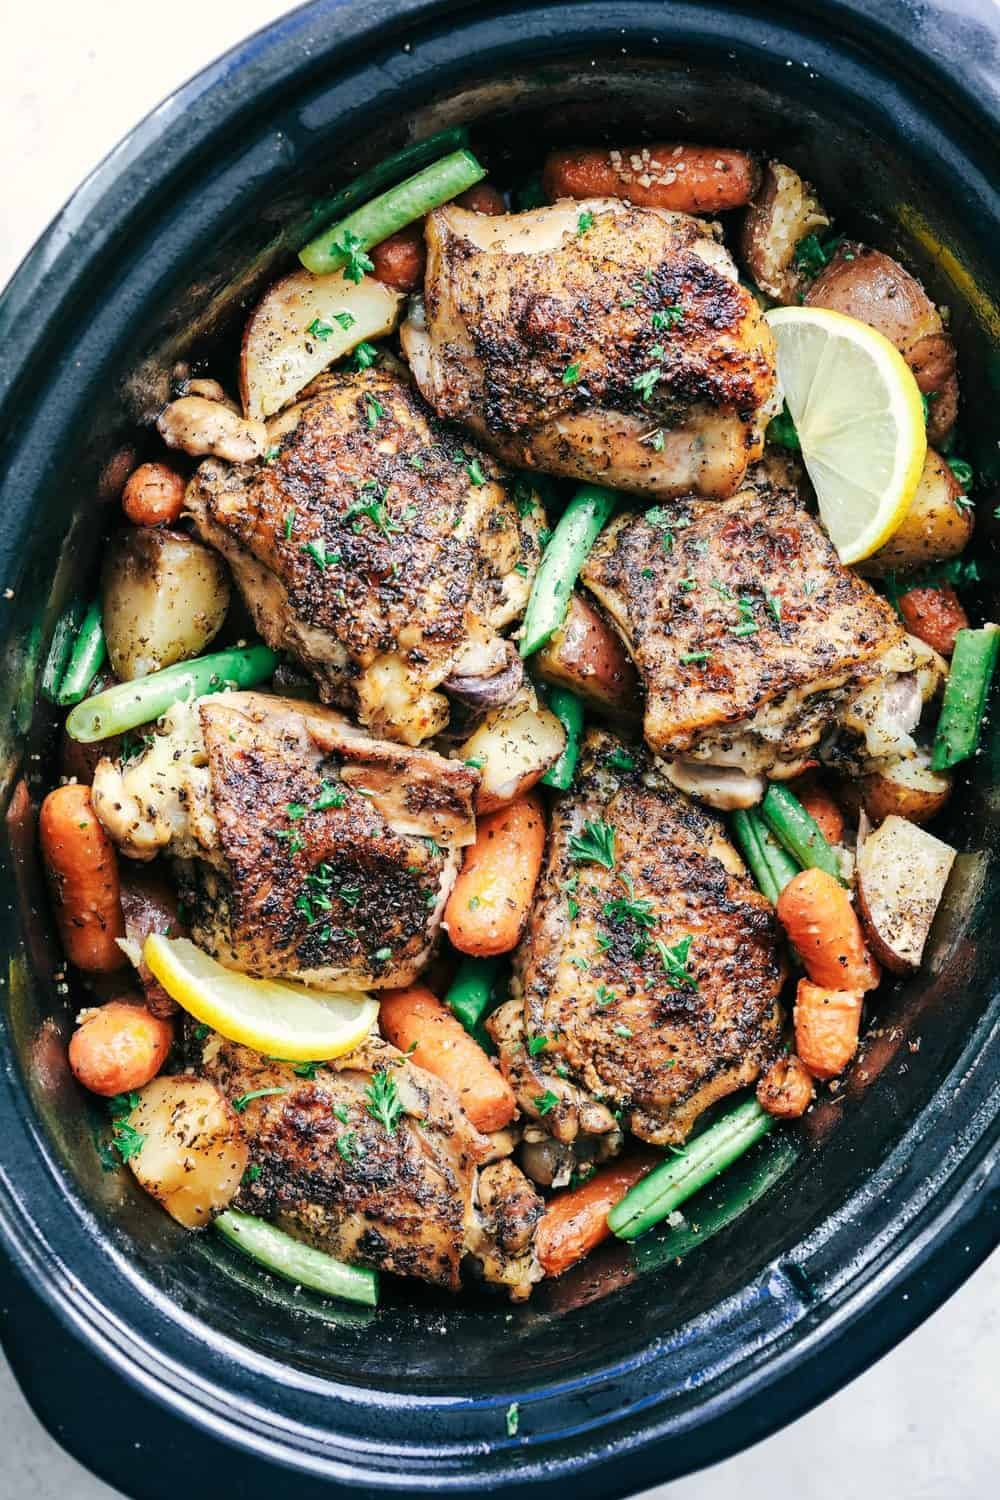 Slow Cooker Lemon Garlic Chicken Thighs and Veggies | The ...